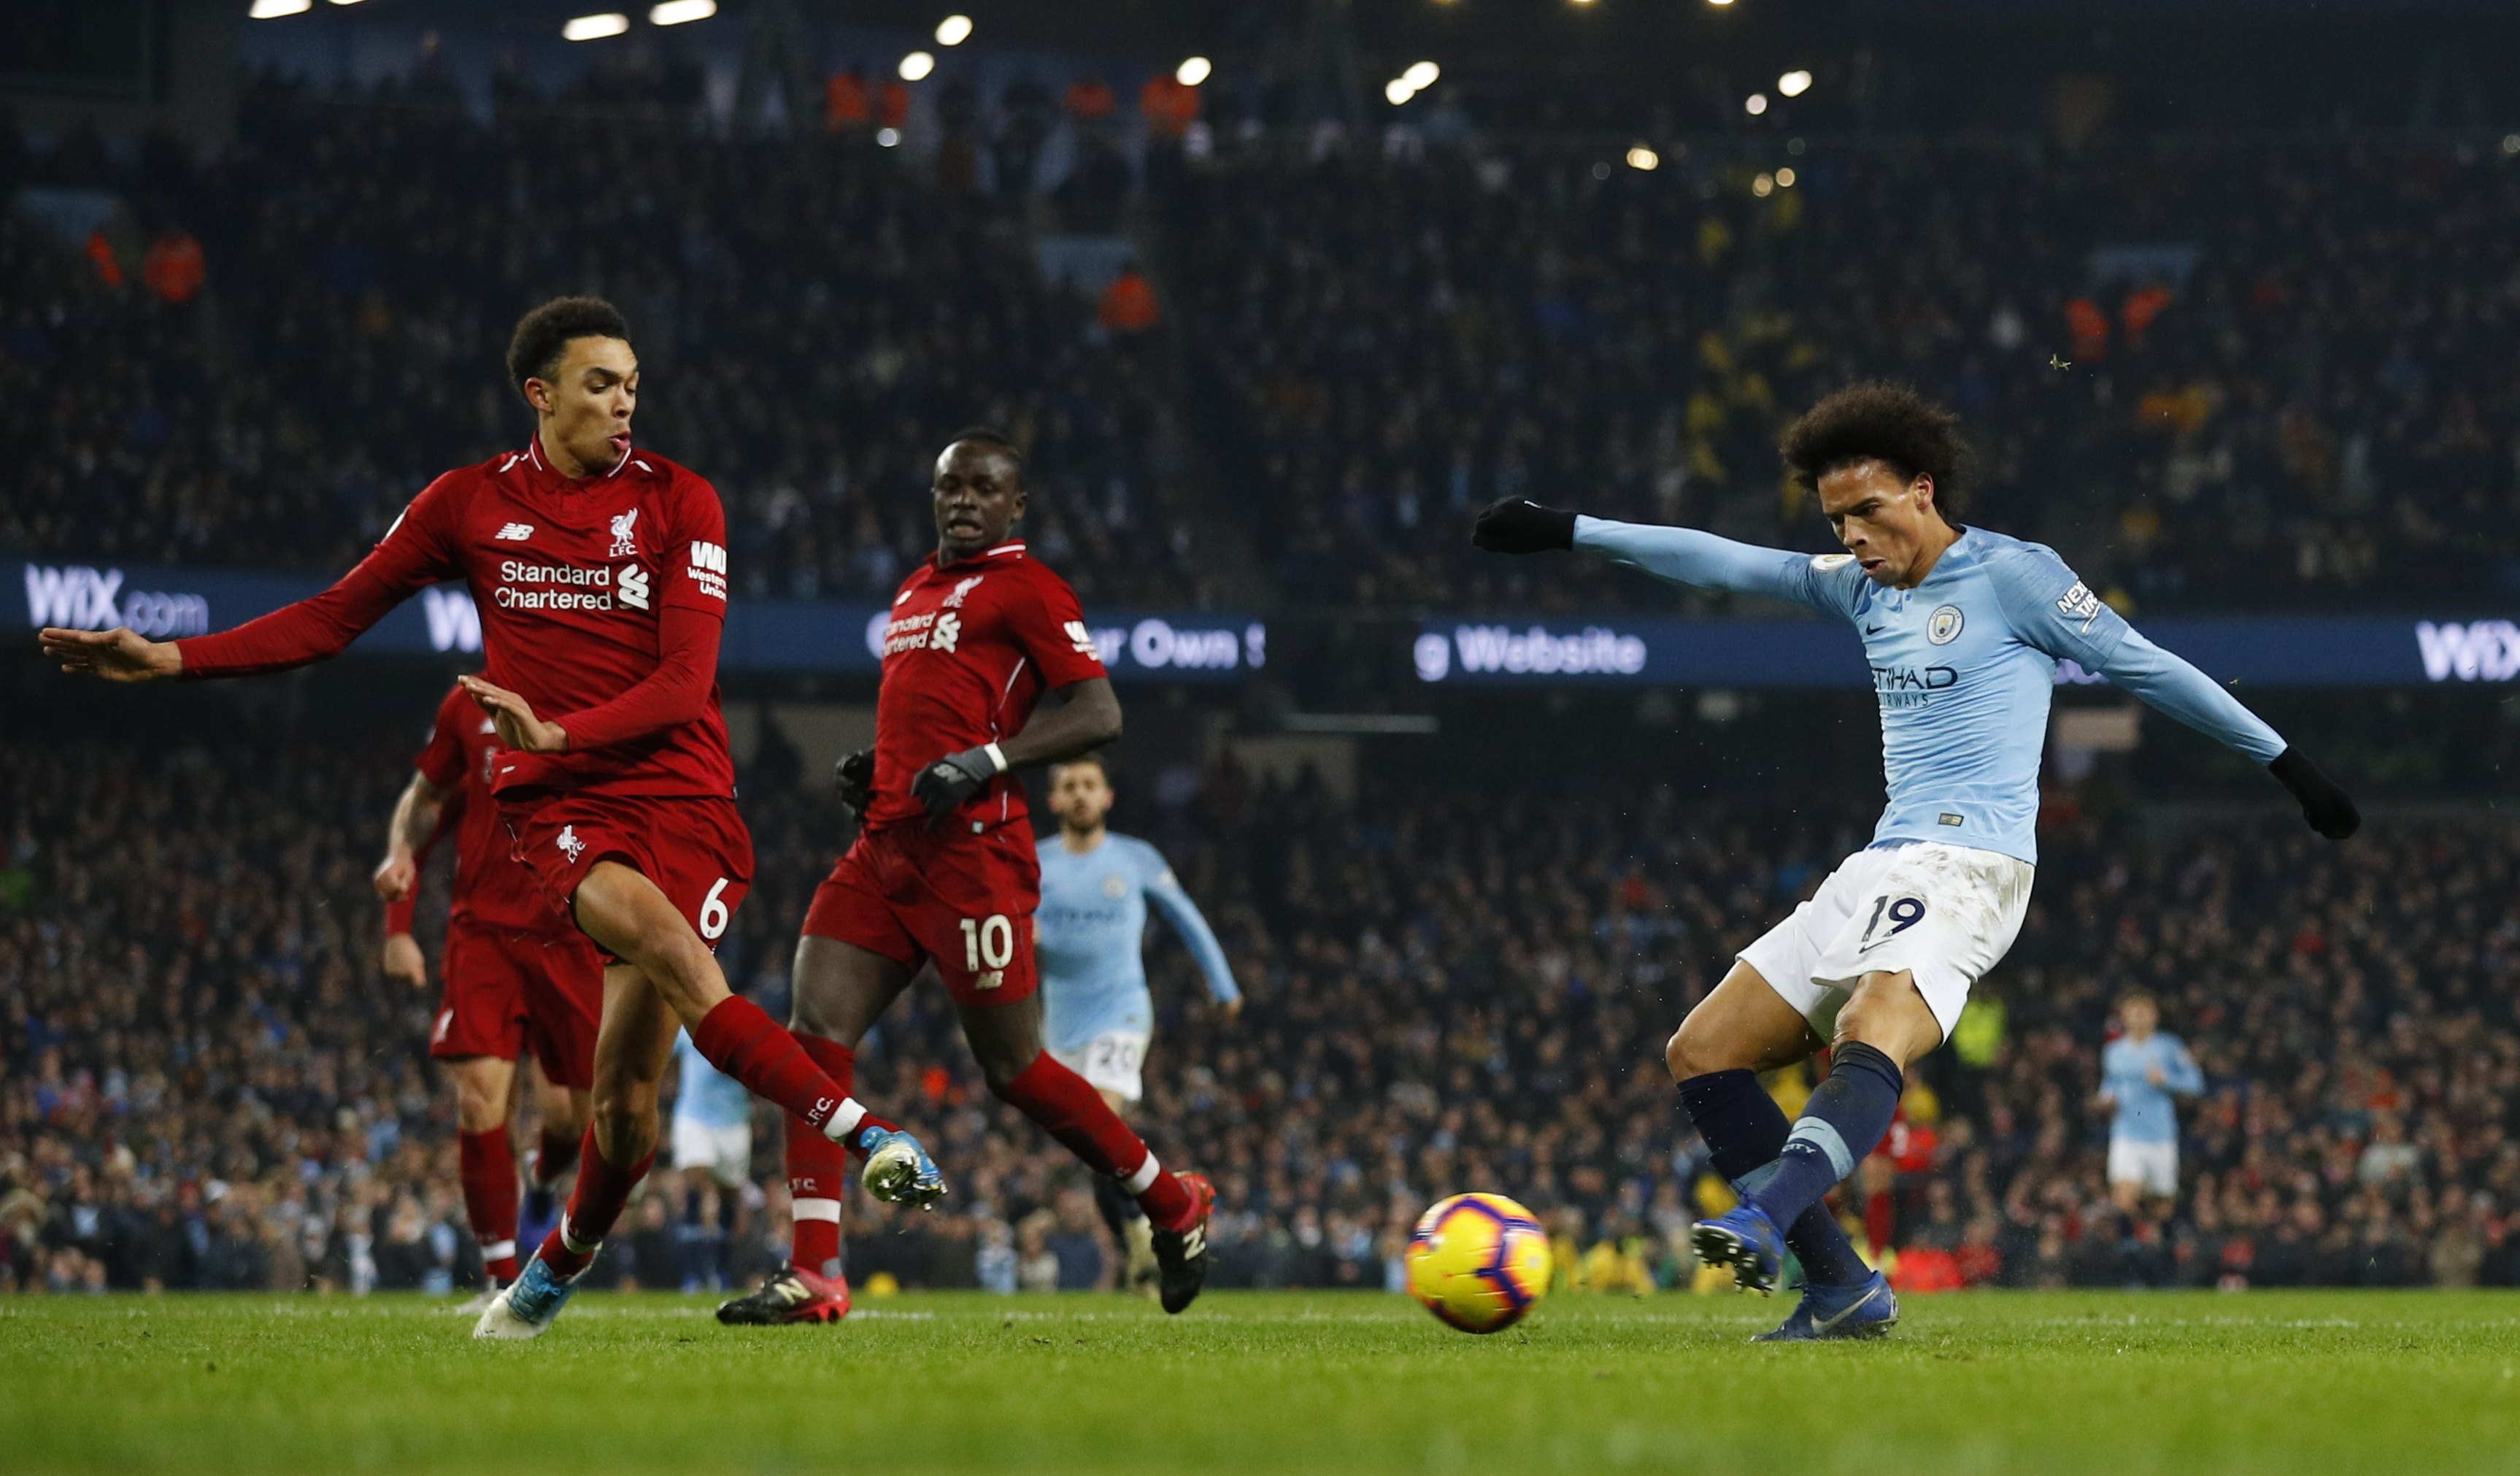 Man City hand Liverpool their first defeat